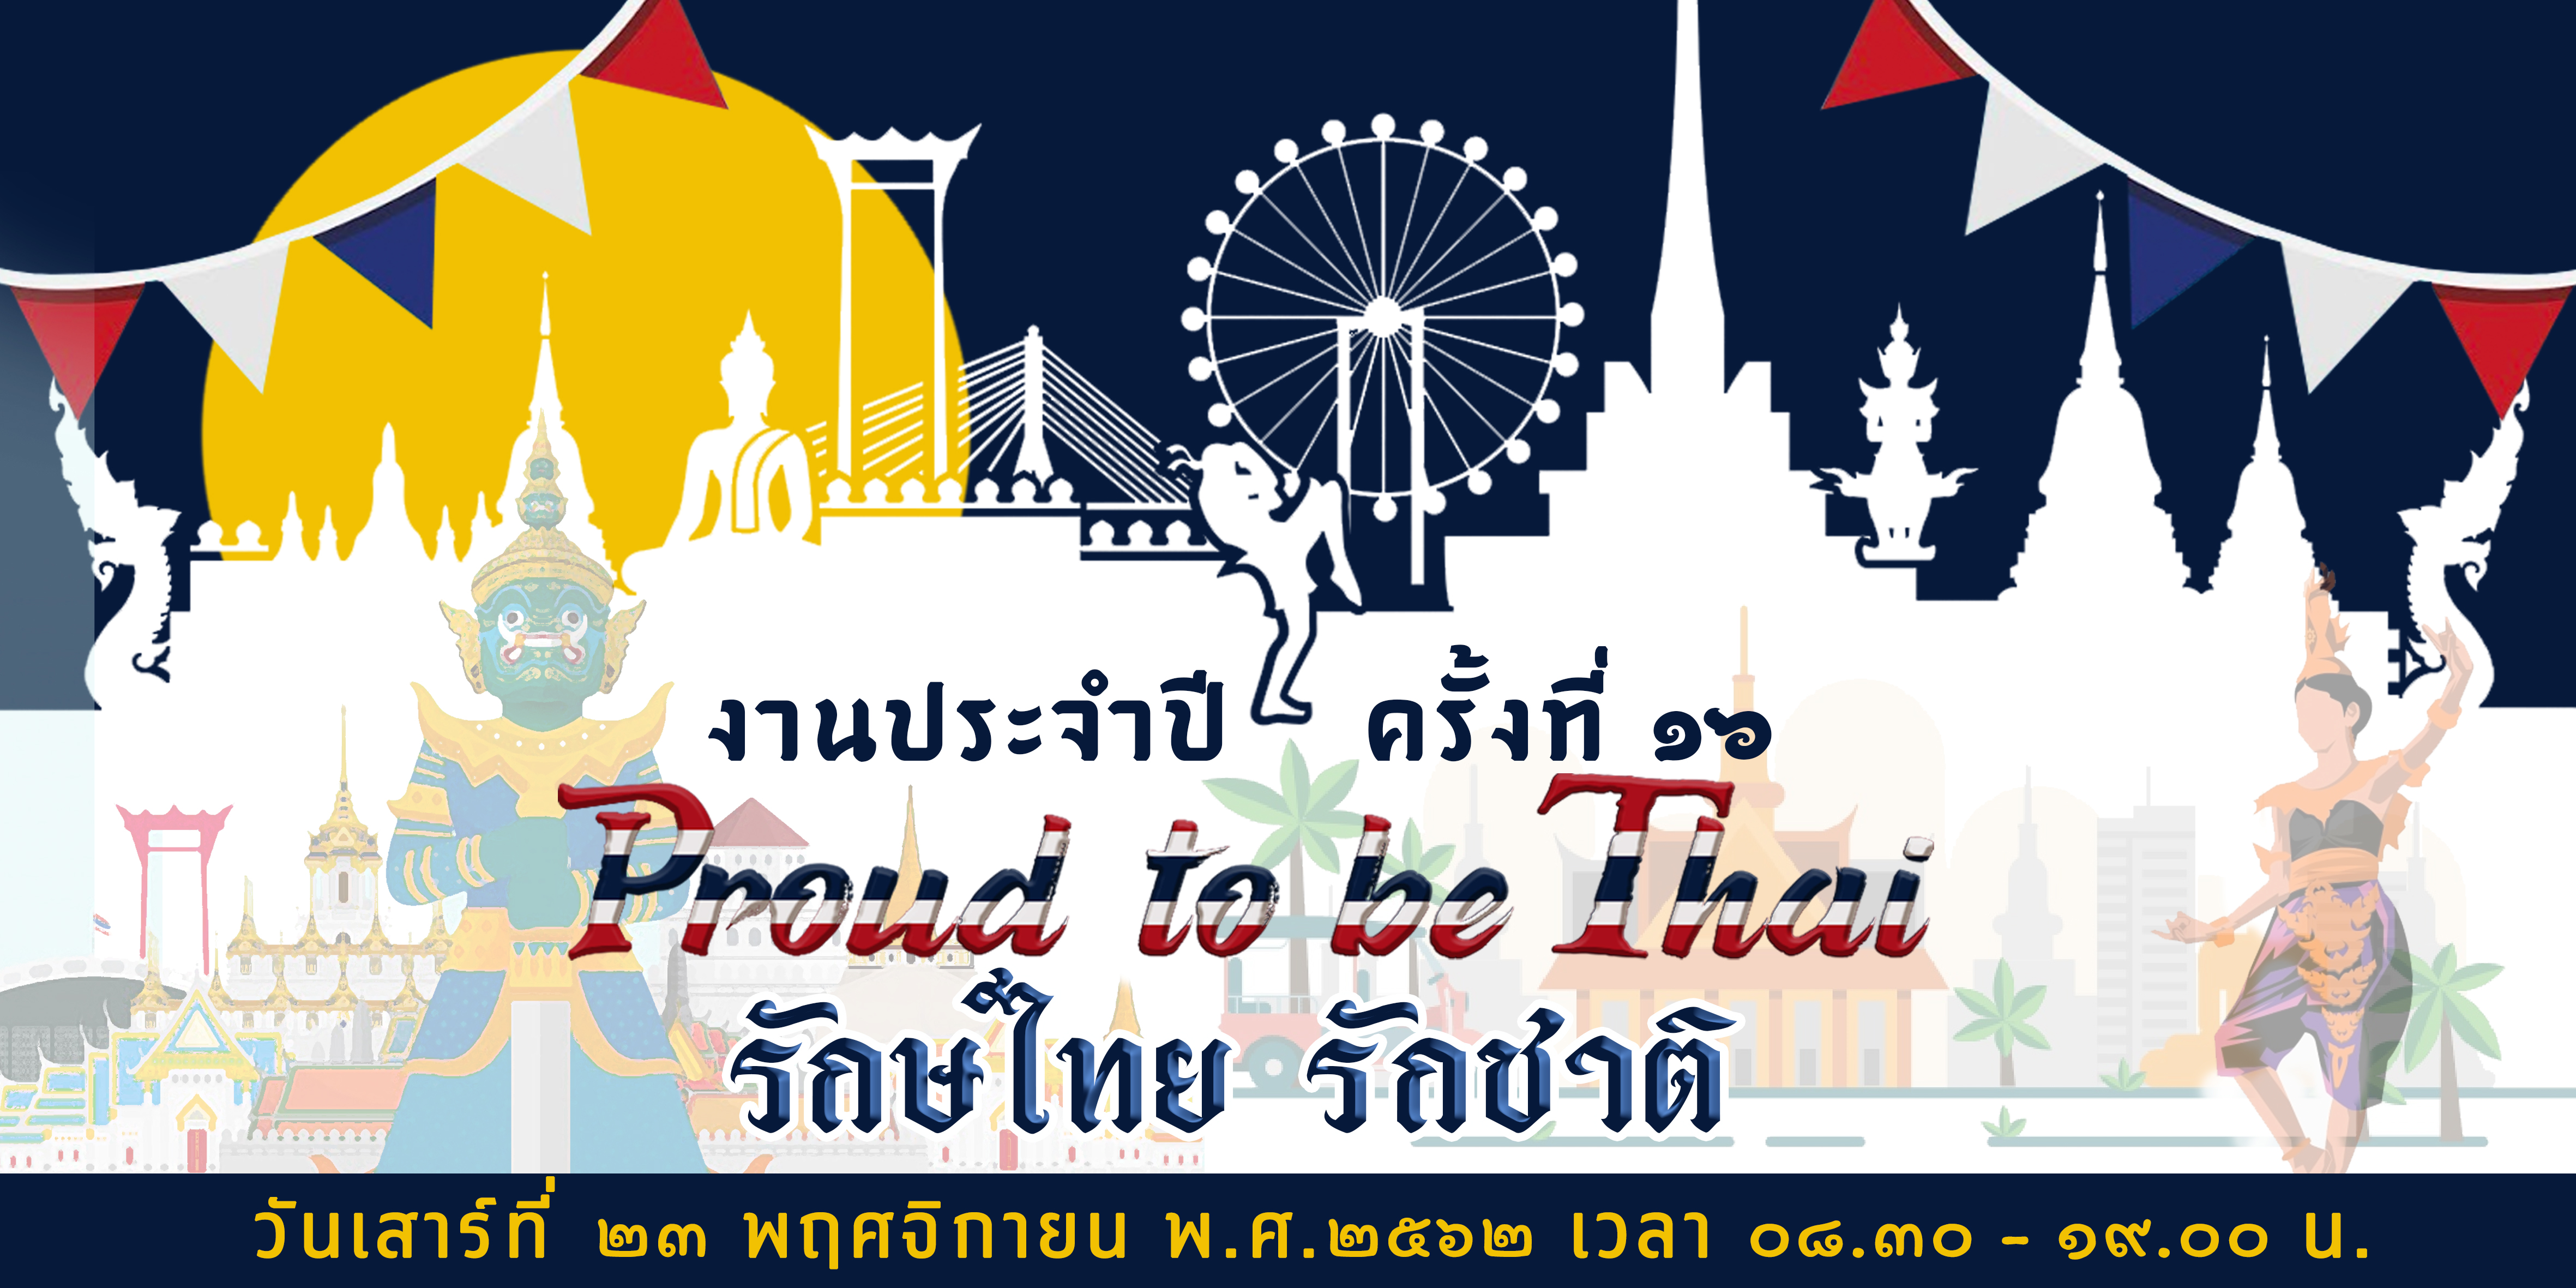 https://kusmp.ac.th/news-all/pr-news/558-16-proud-to-be-thai.html